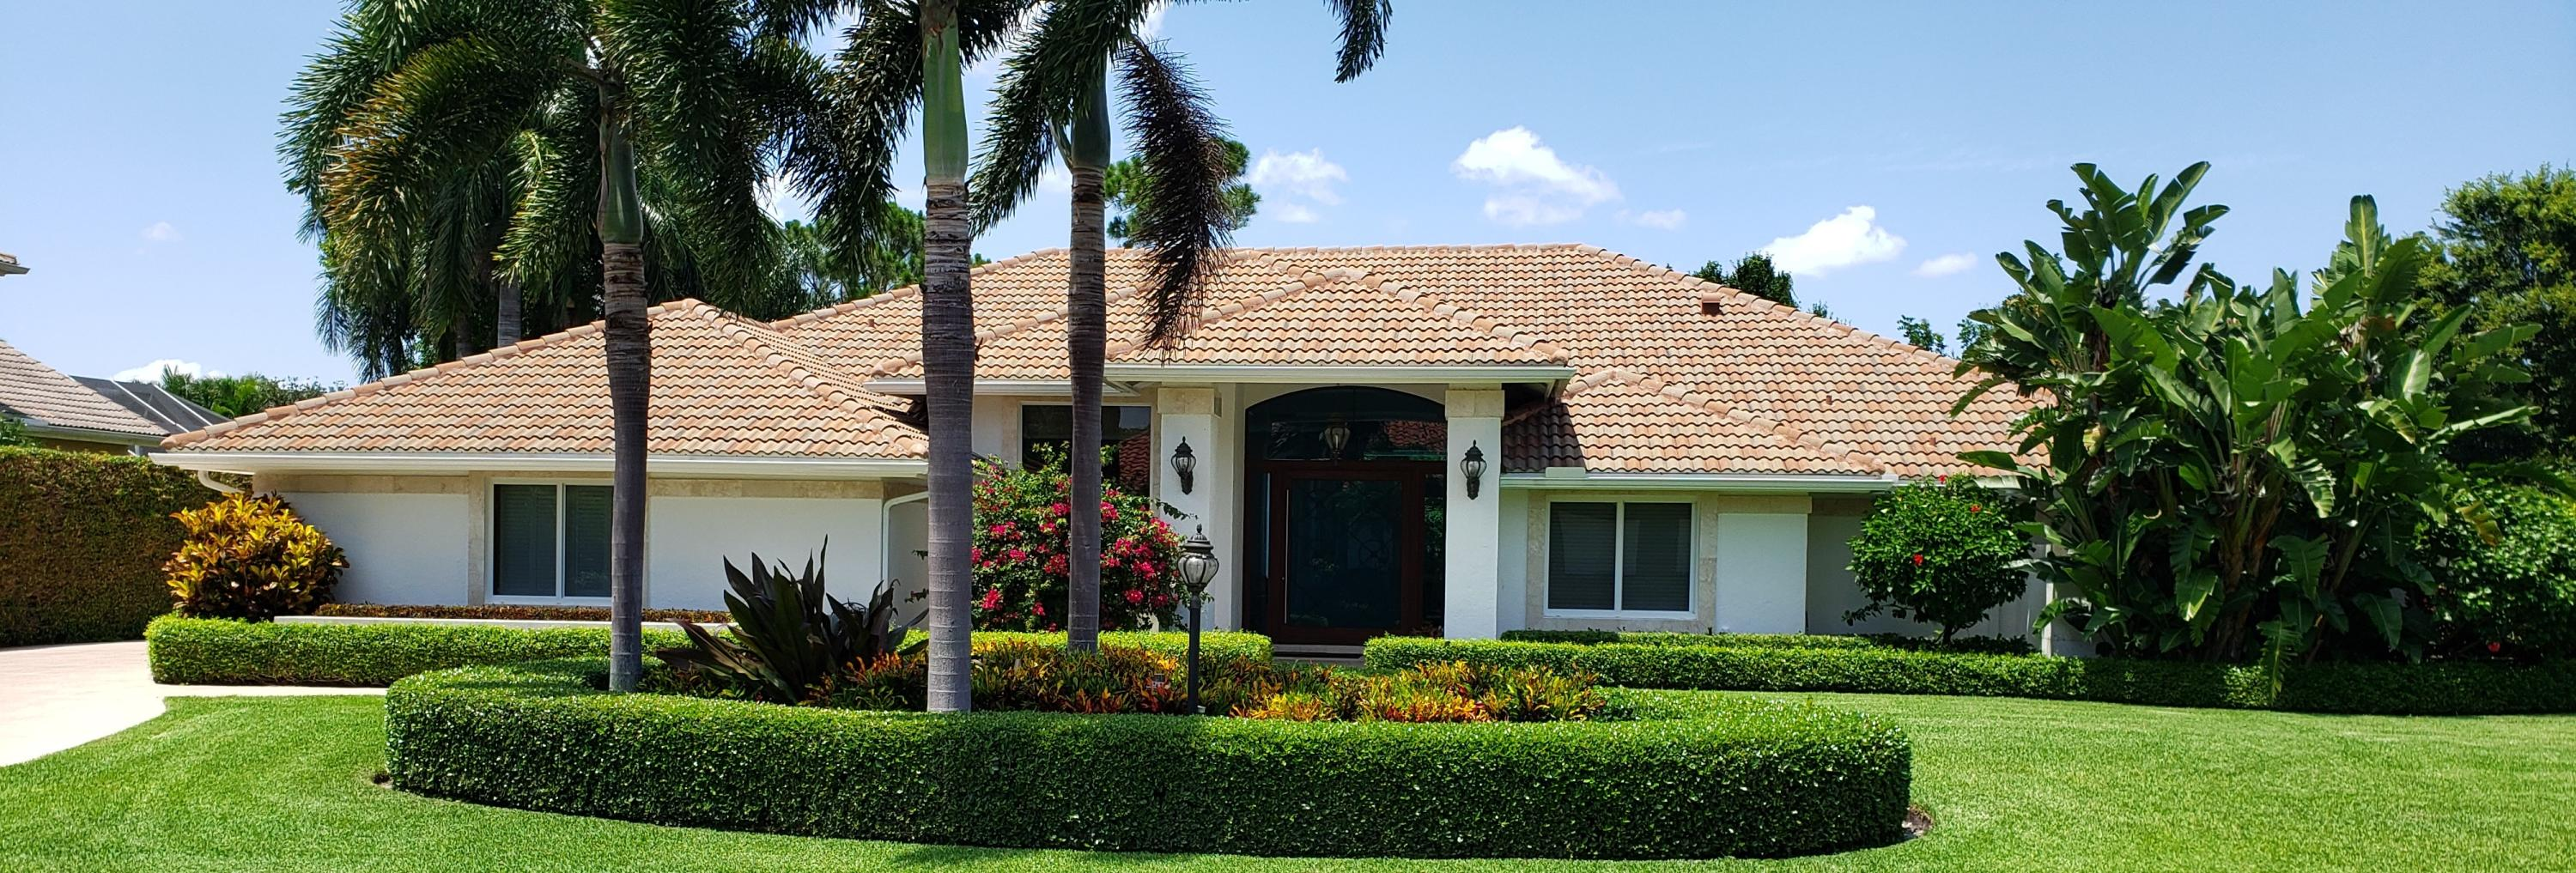 Home for sale in Pine Tree Golf Club Boynton Beach Florida